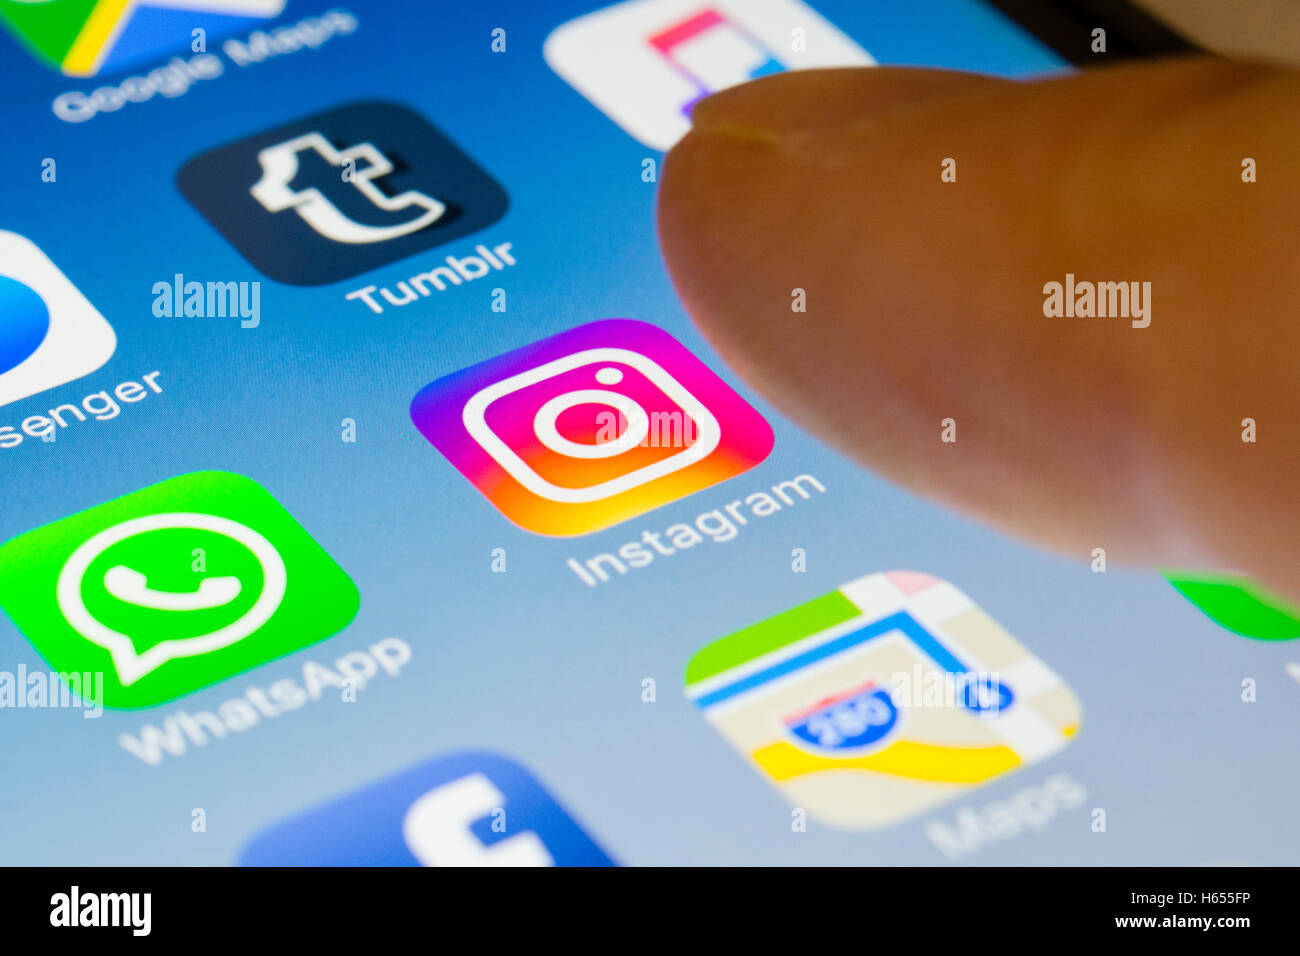 how to download instagram on my phone